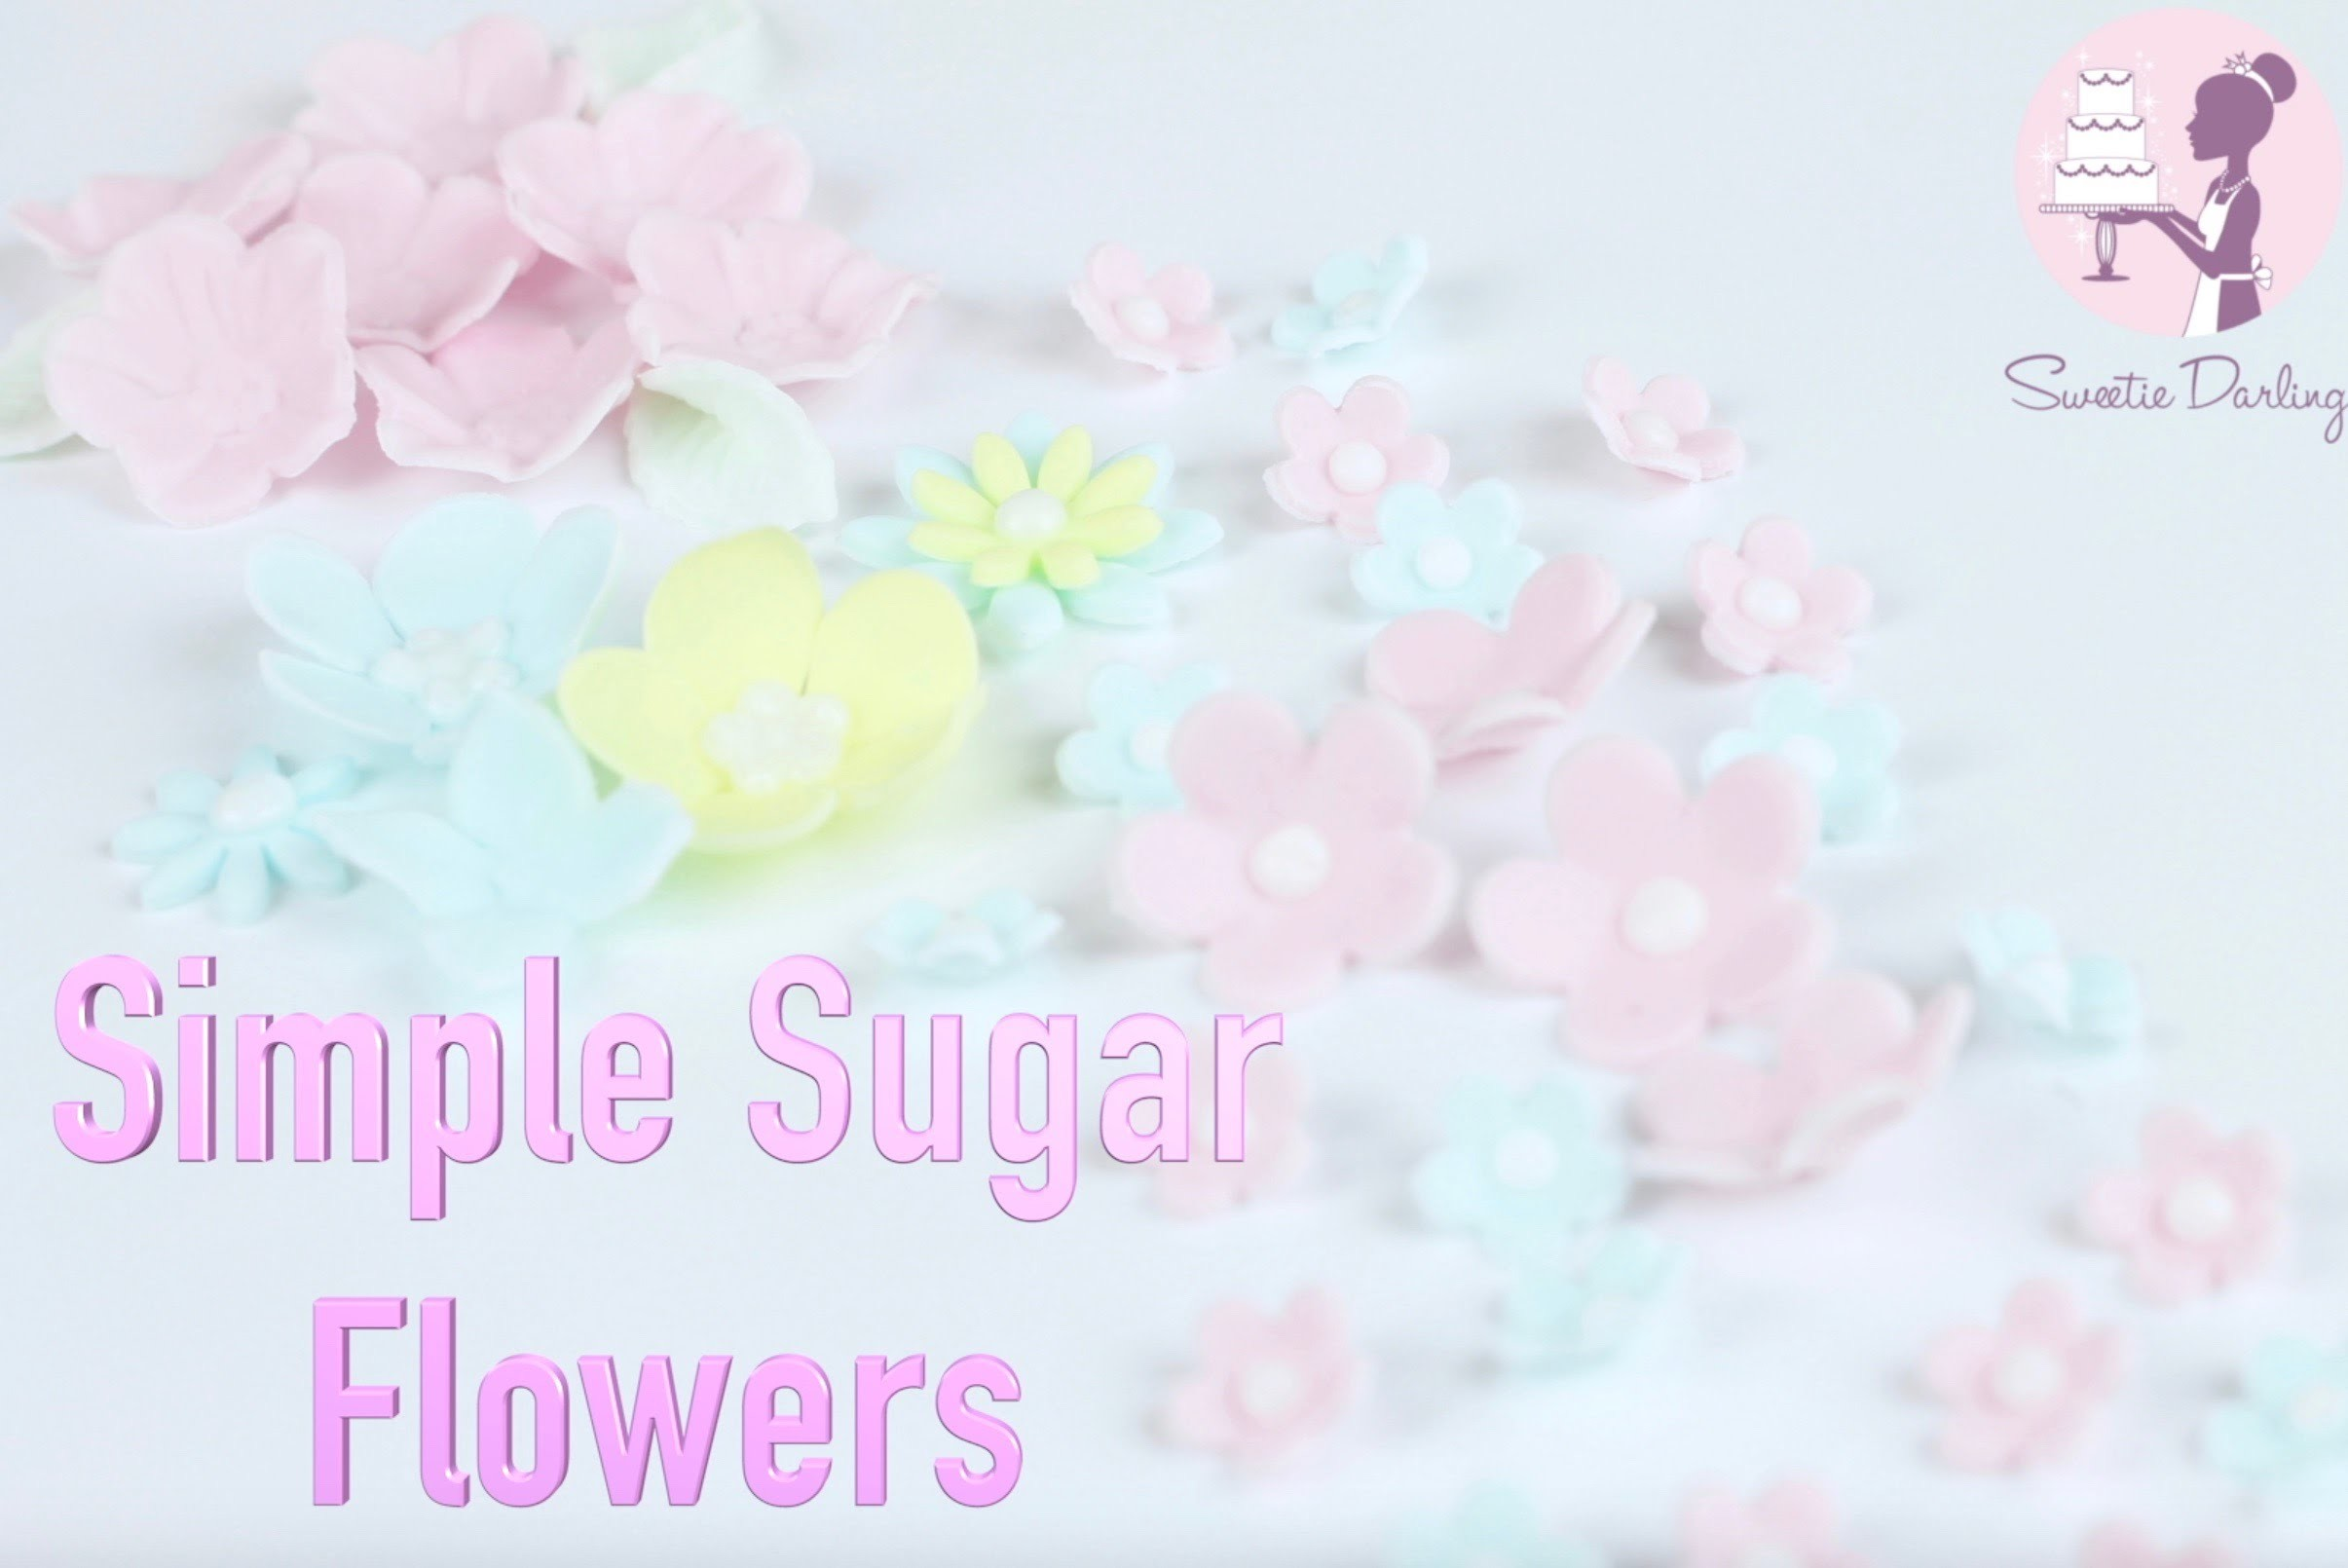 HOW TO MAKE SIMPLE SUGAR FLOWERS